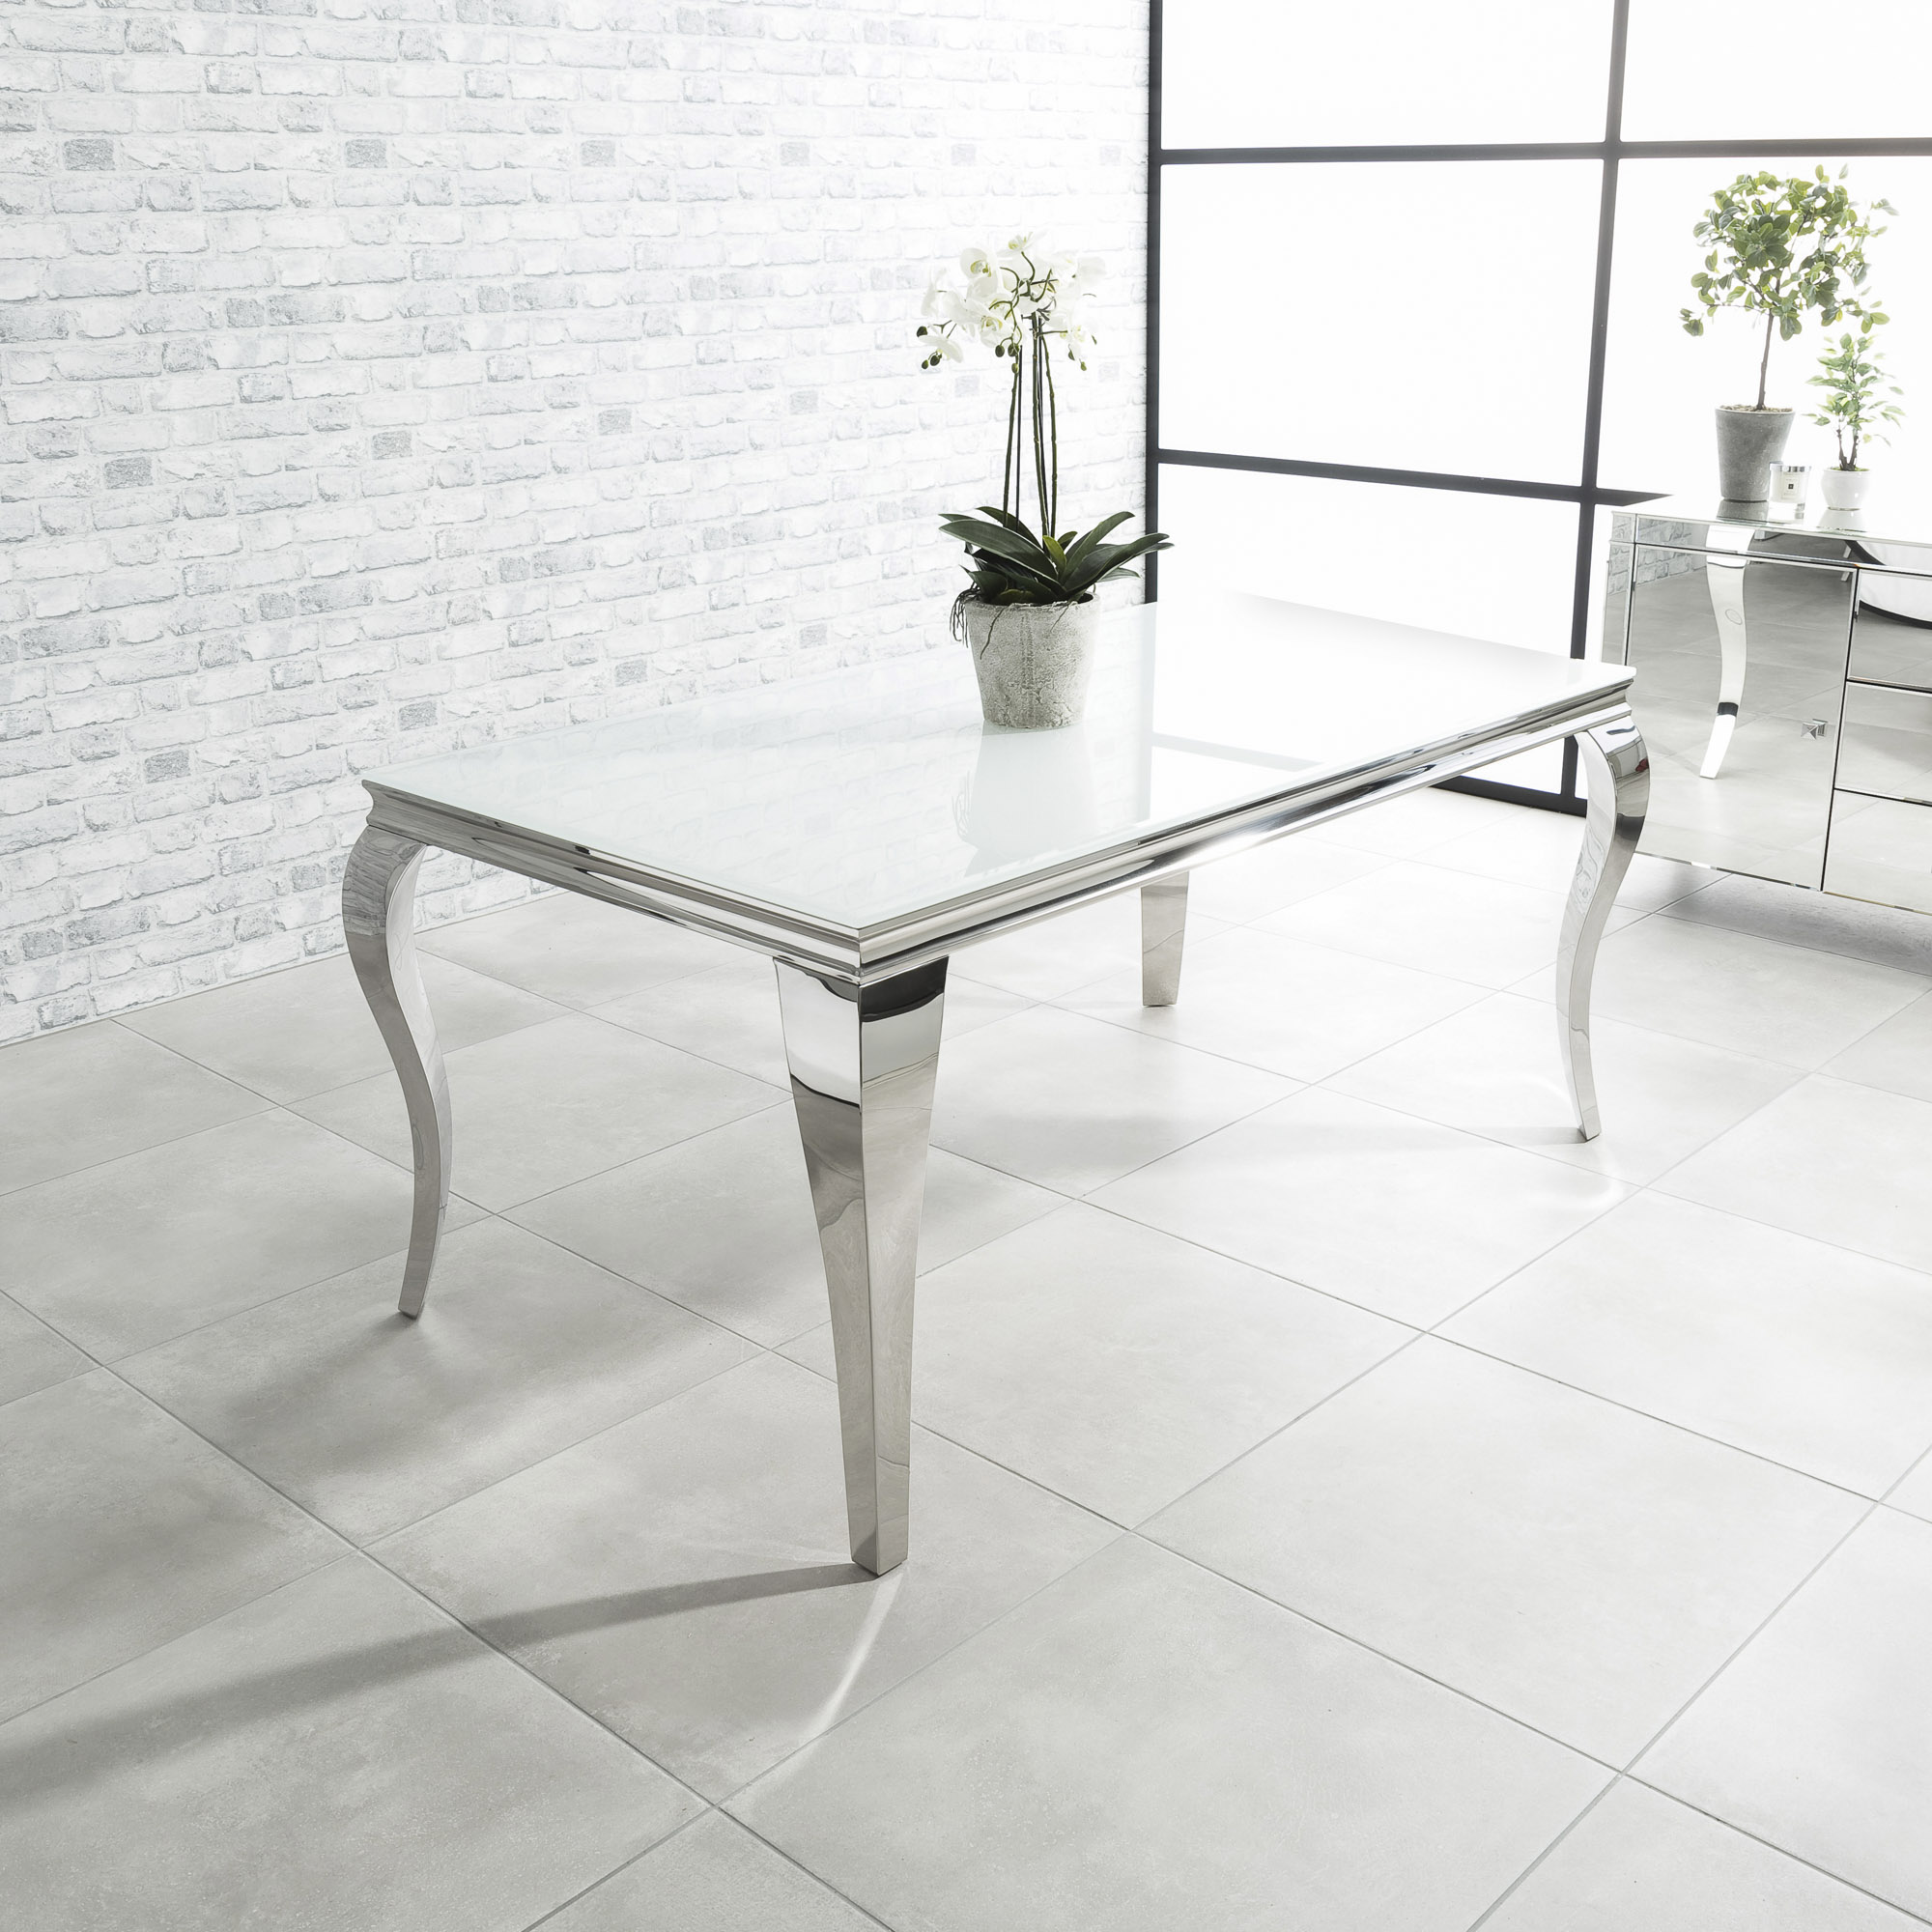 1.6m Louis Polished Steel Dining White Glass Table Set with 4 Grey Brushed Velvet Dining Chairs